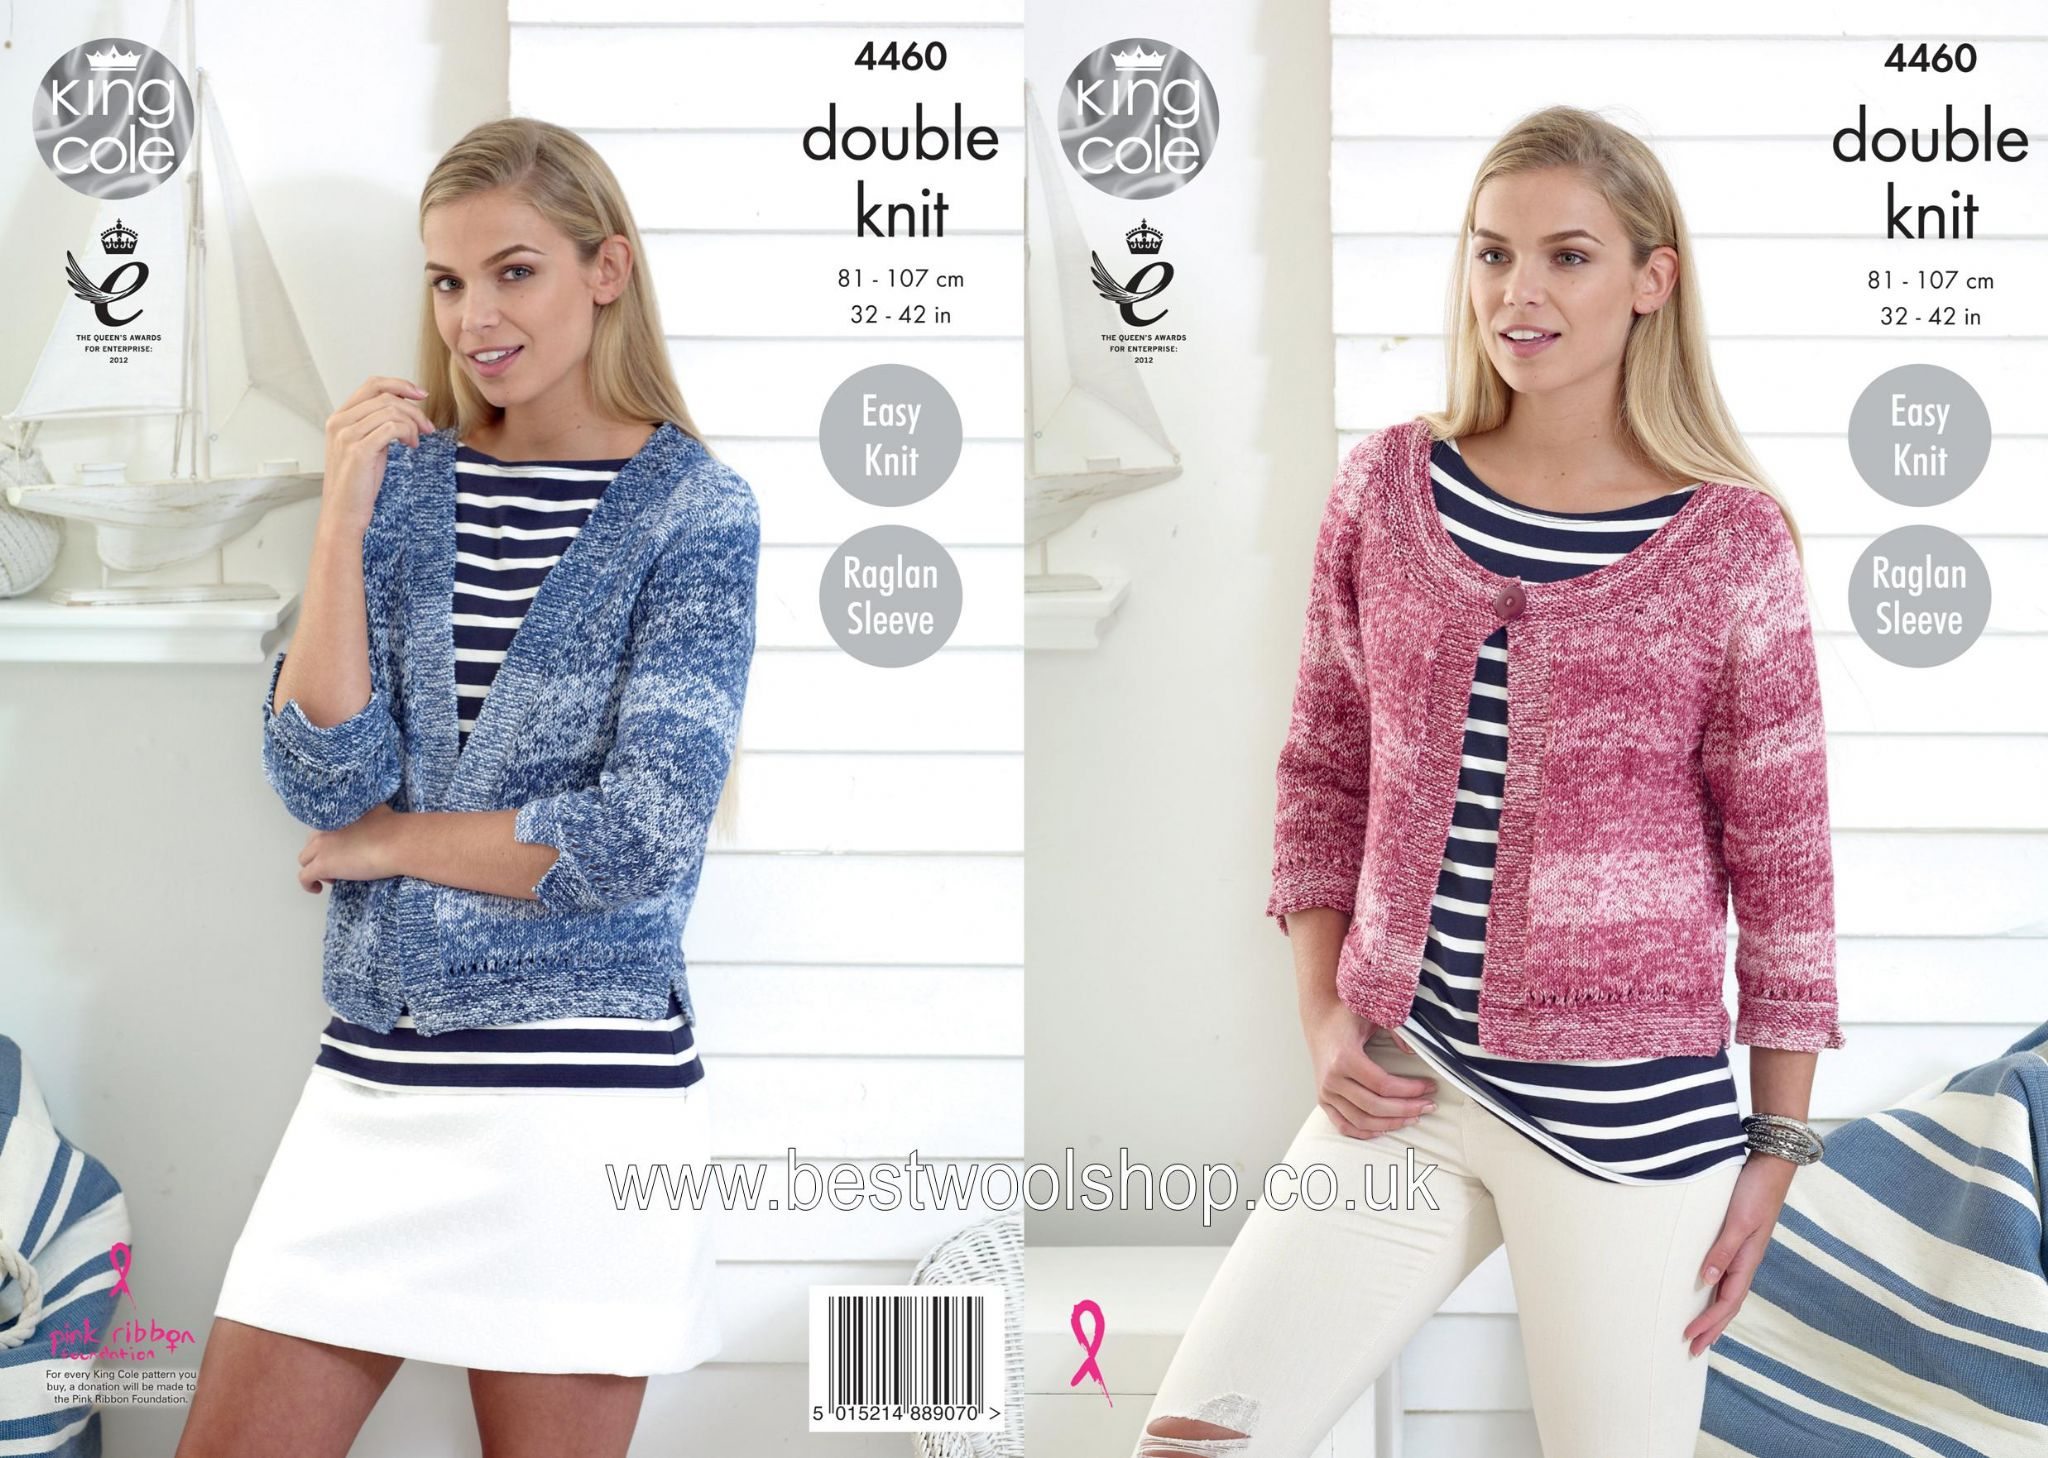 4460 - KING COLE VOGUE DK ROUND & V NECK RAGLAN SLEEVE CARDIGAN ...